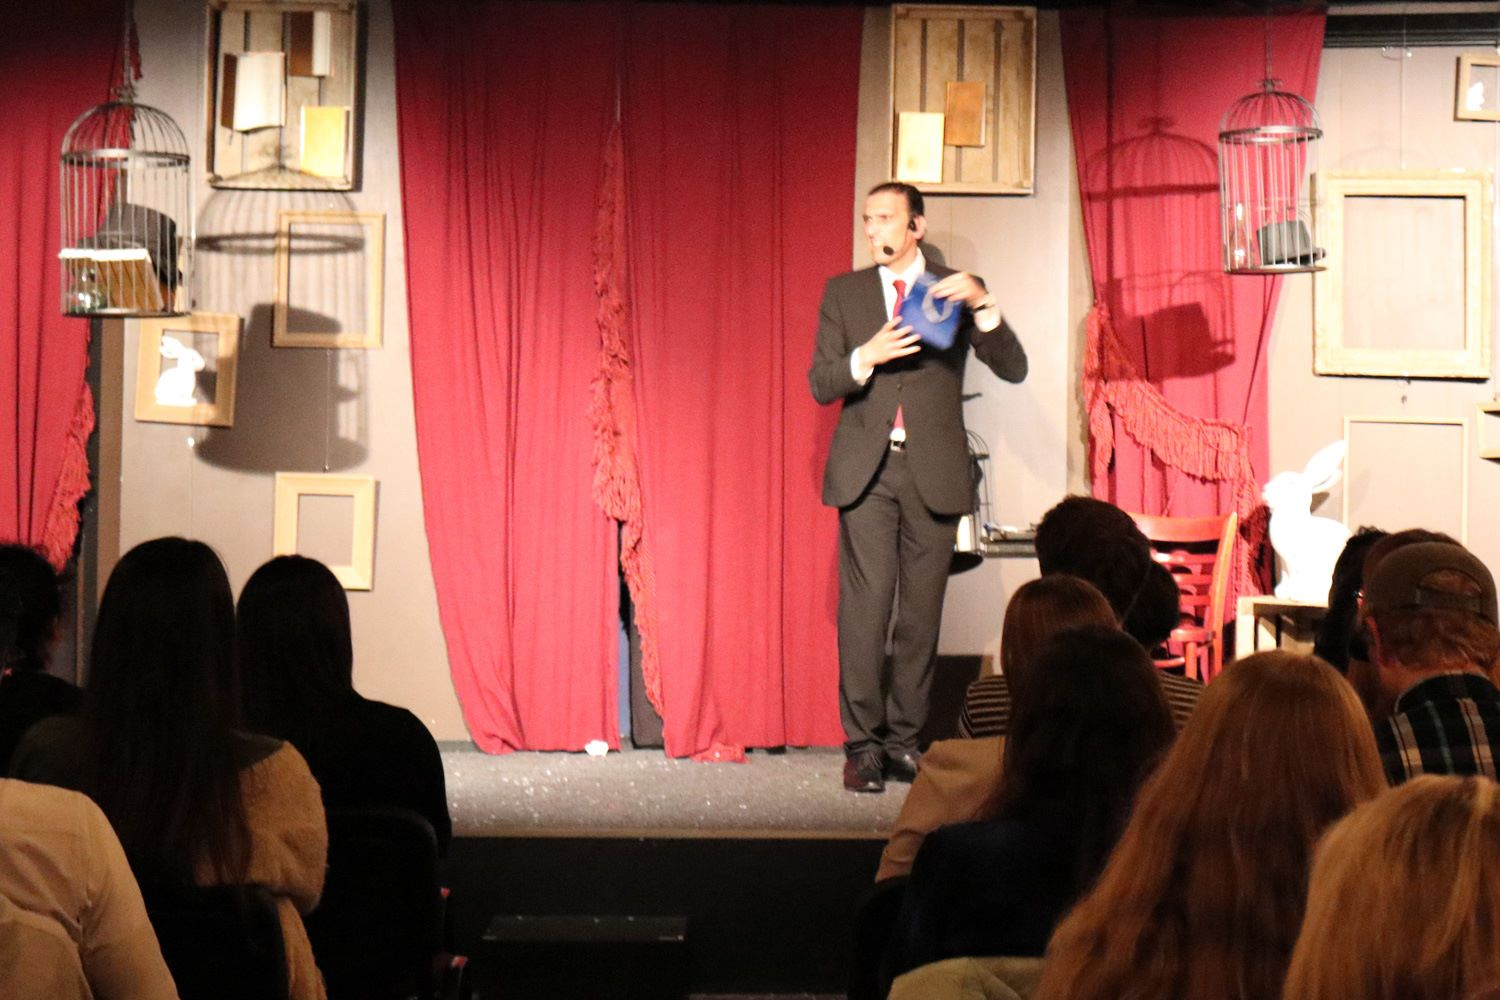 Magician Brian Role performs in Amsterdam at the Amsterdam Magic Show - Magician Malta